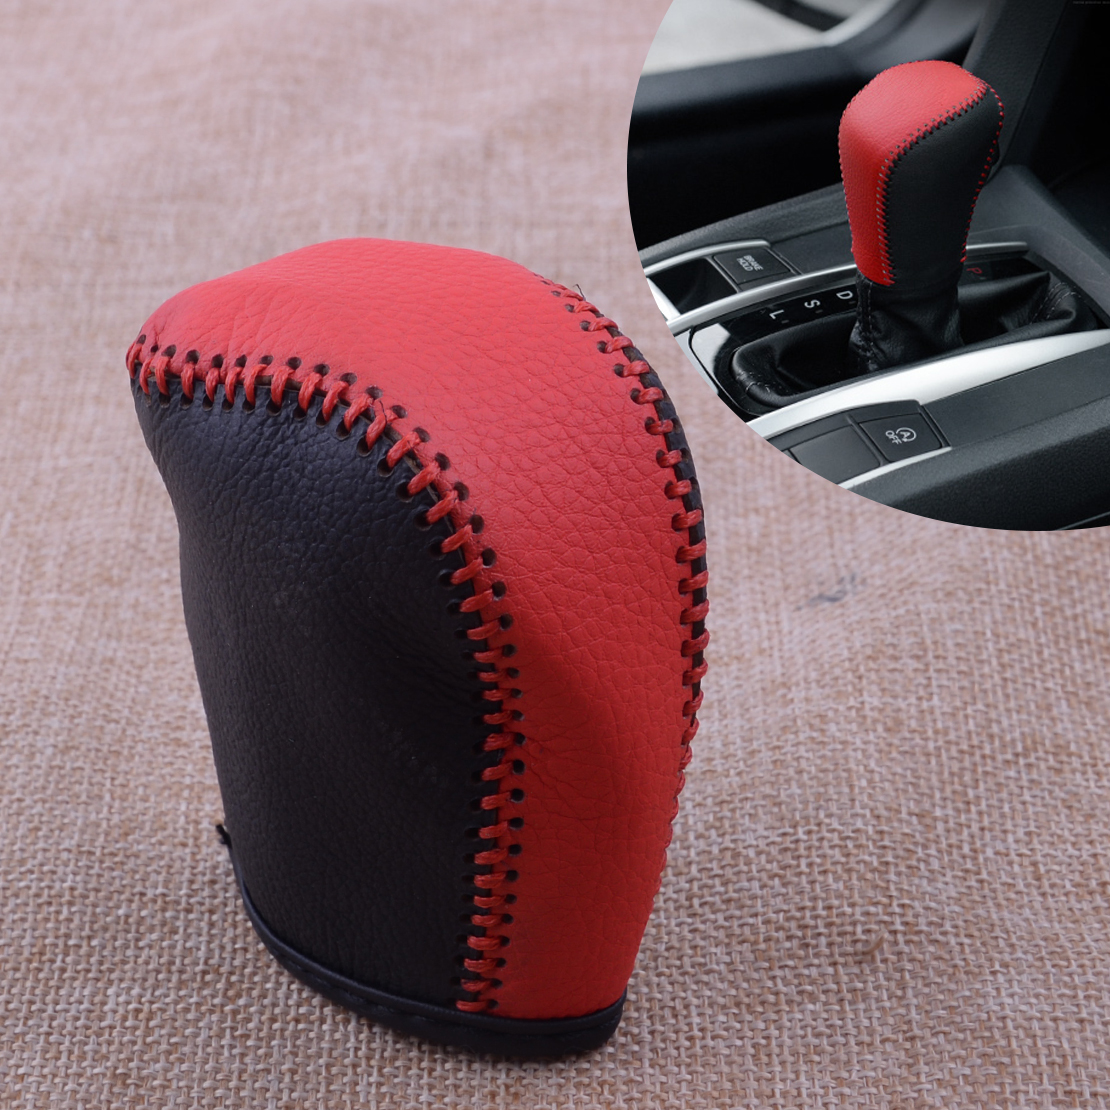 Black/&Red Leather Gear Shift Knob Head Cover Shell Trim fit For Honda Civic16-17